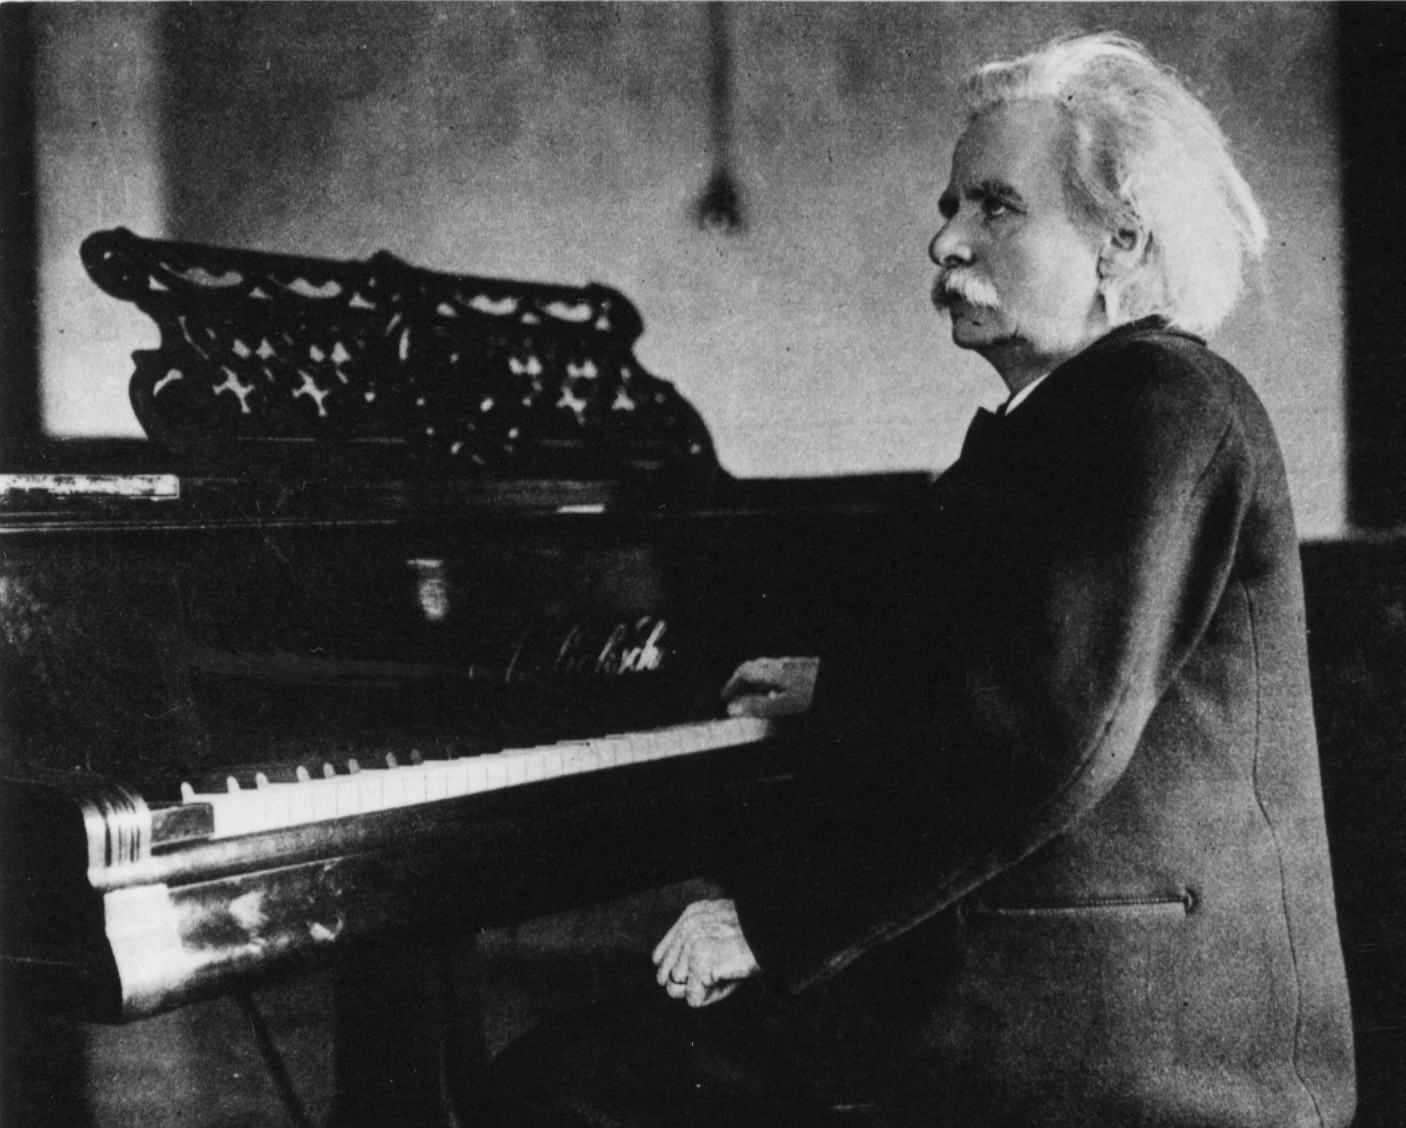 10 facts about the great Edvard Grieg - Pianist